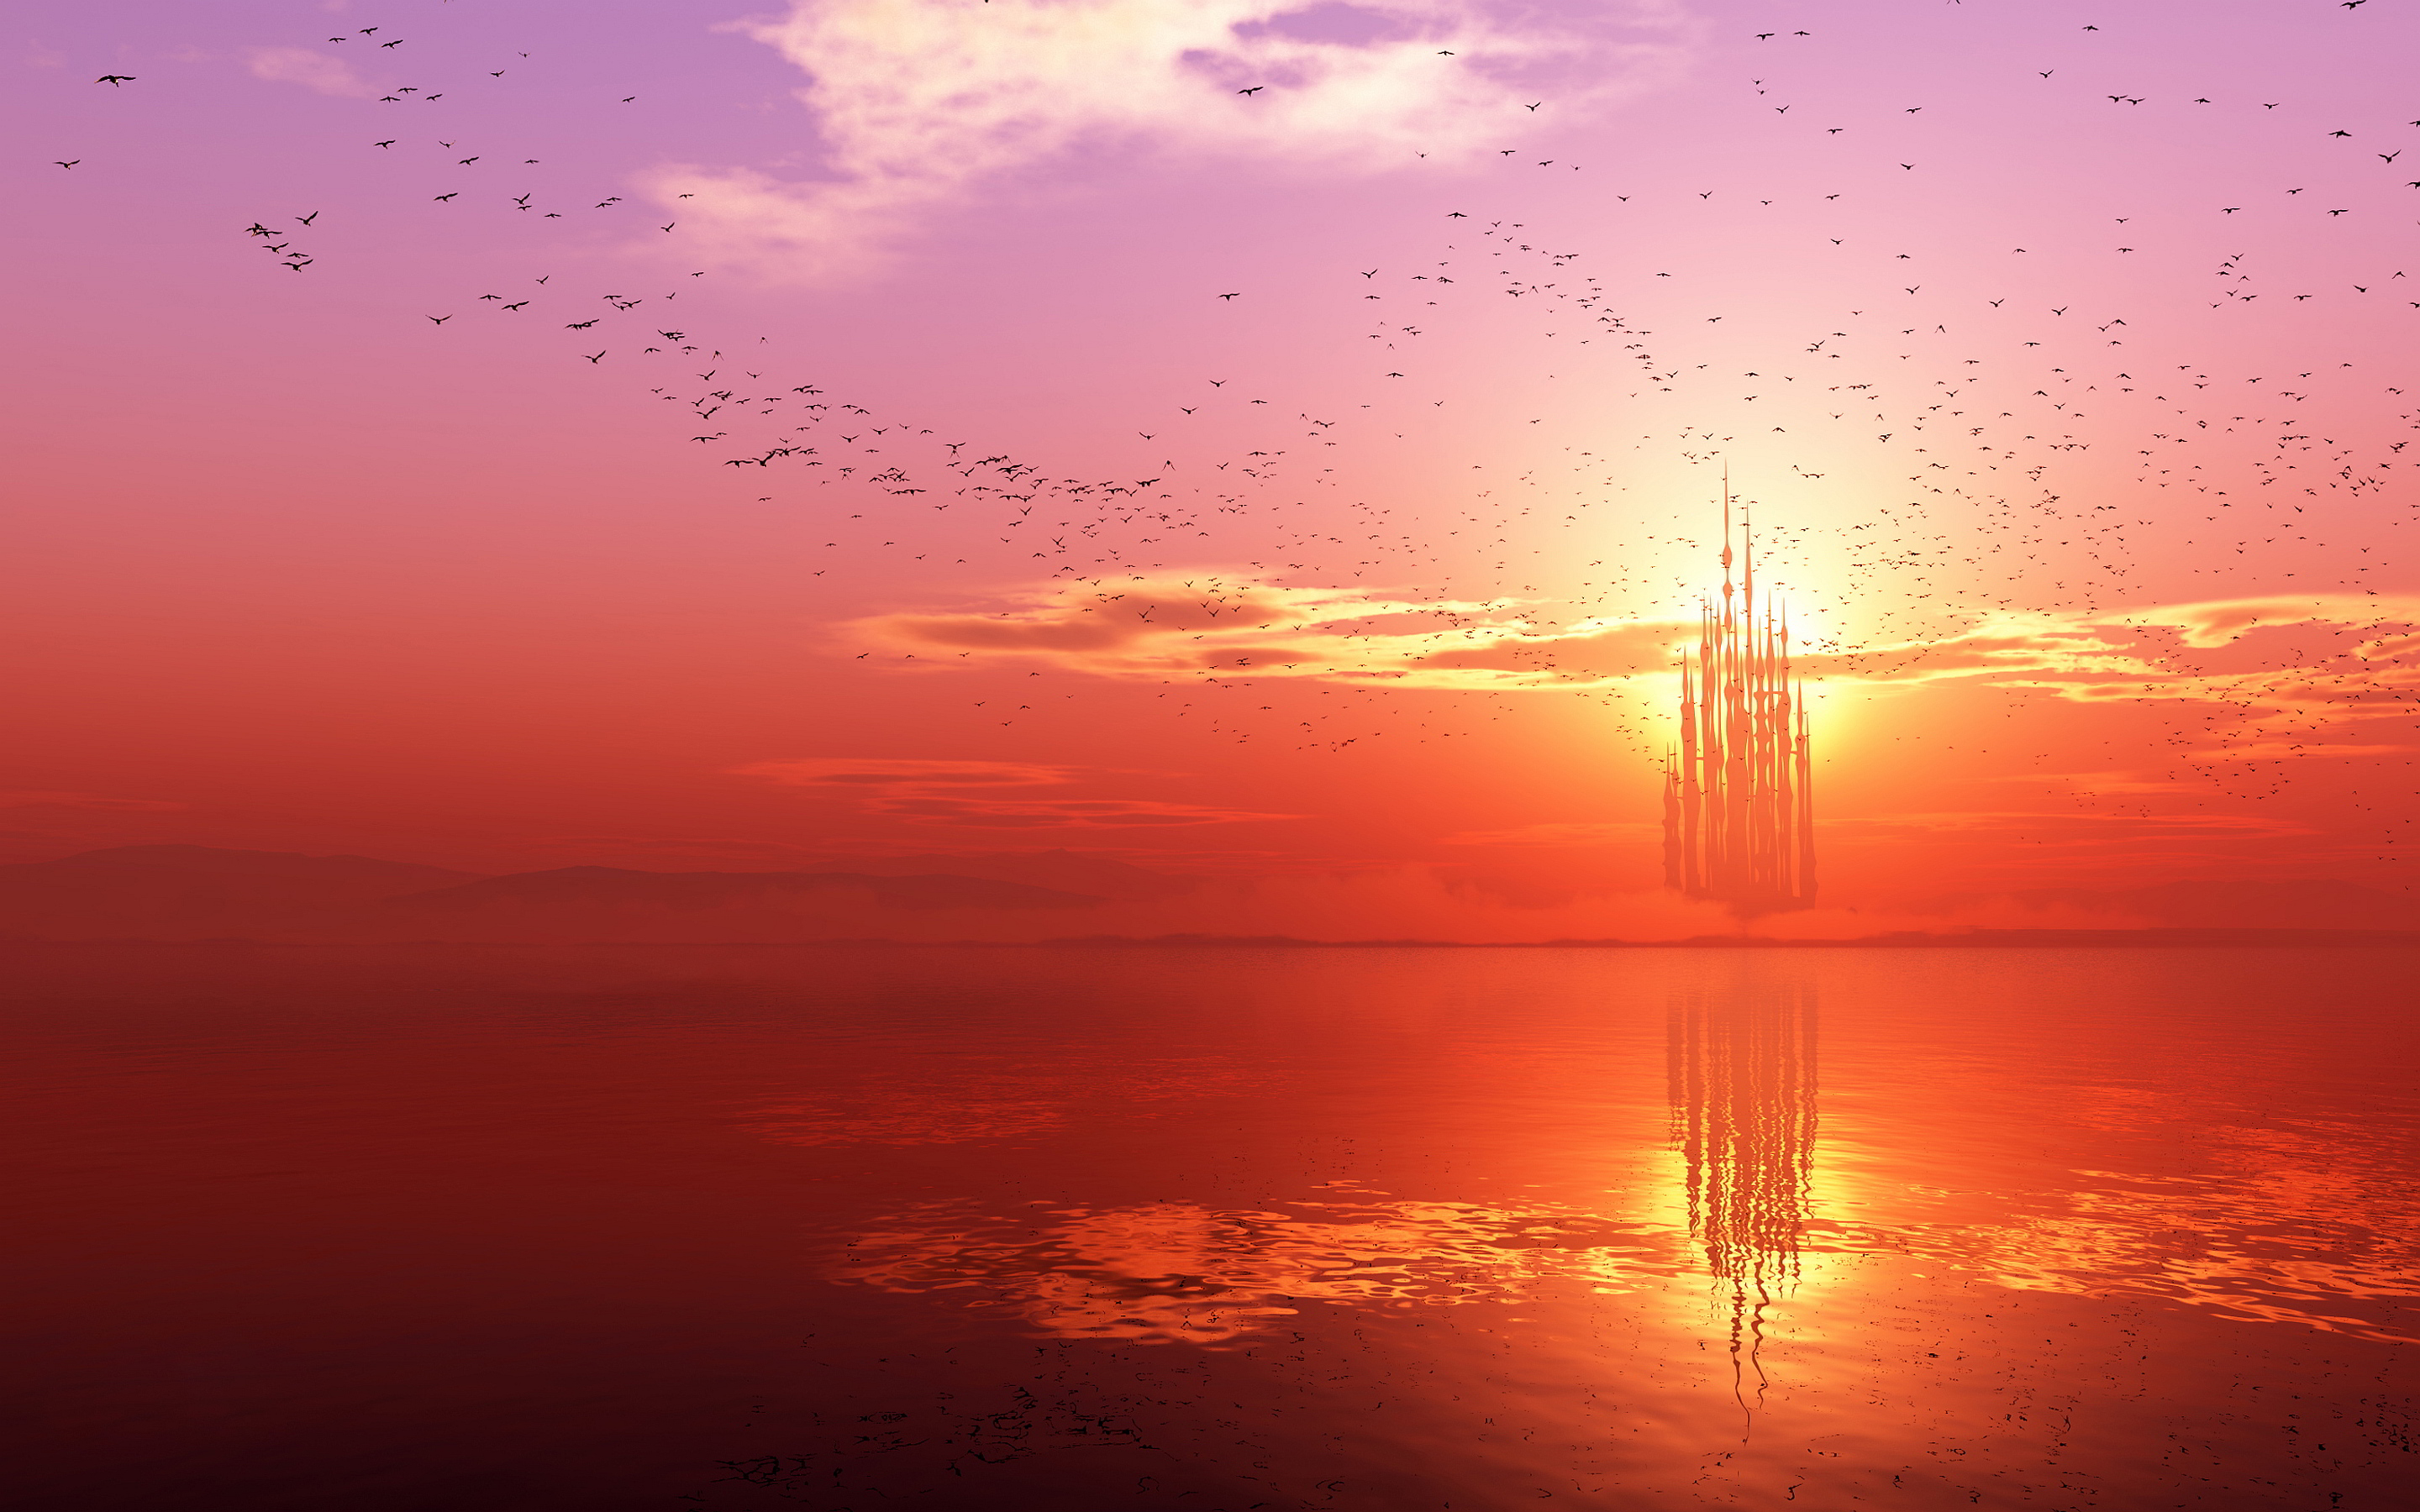 Cute Animated Wallpapers For Cell Phones Sunset On Horizon Hd Wallpapers Pulse